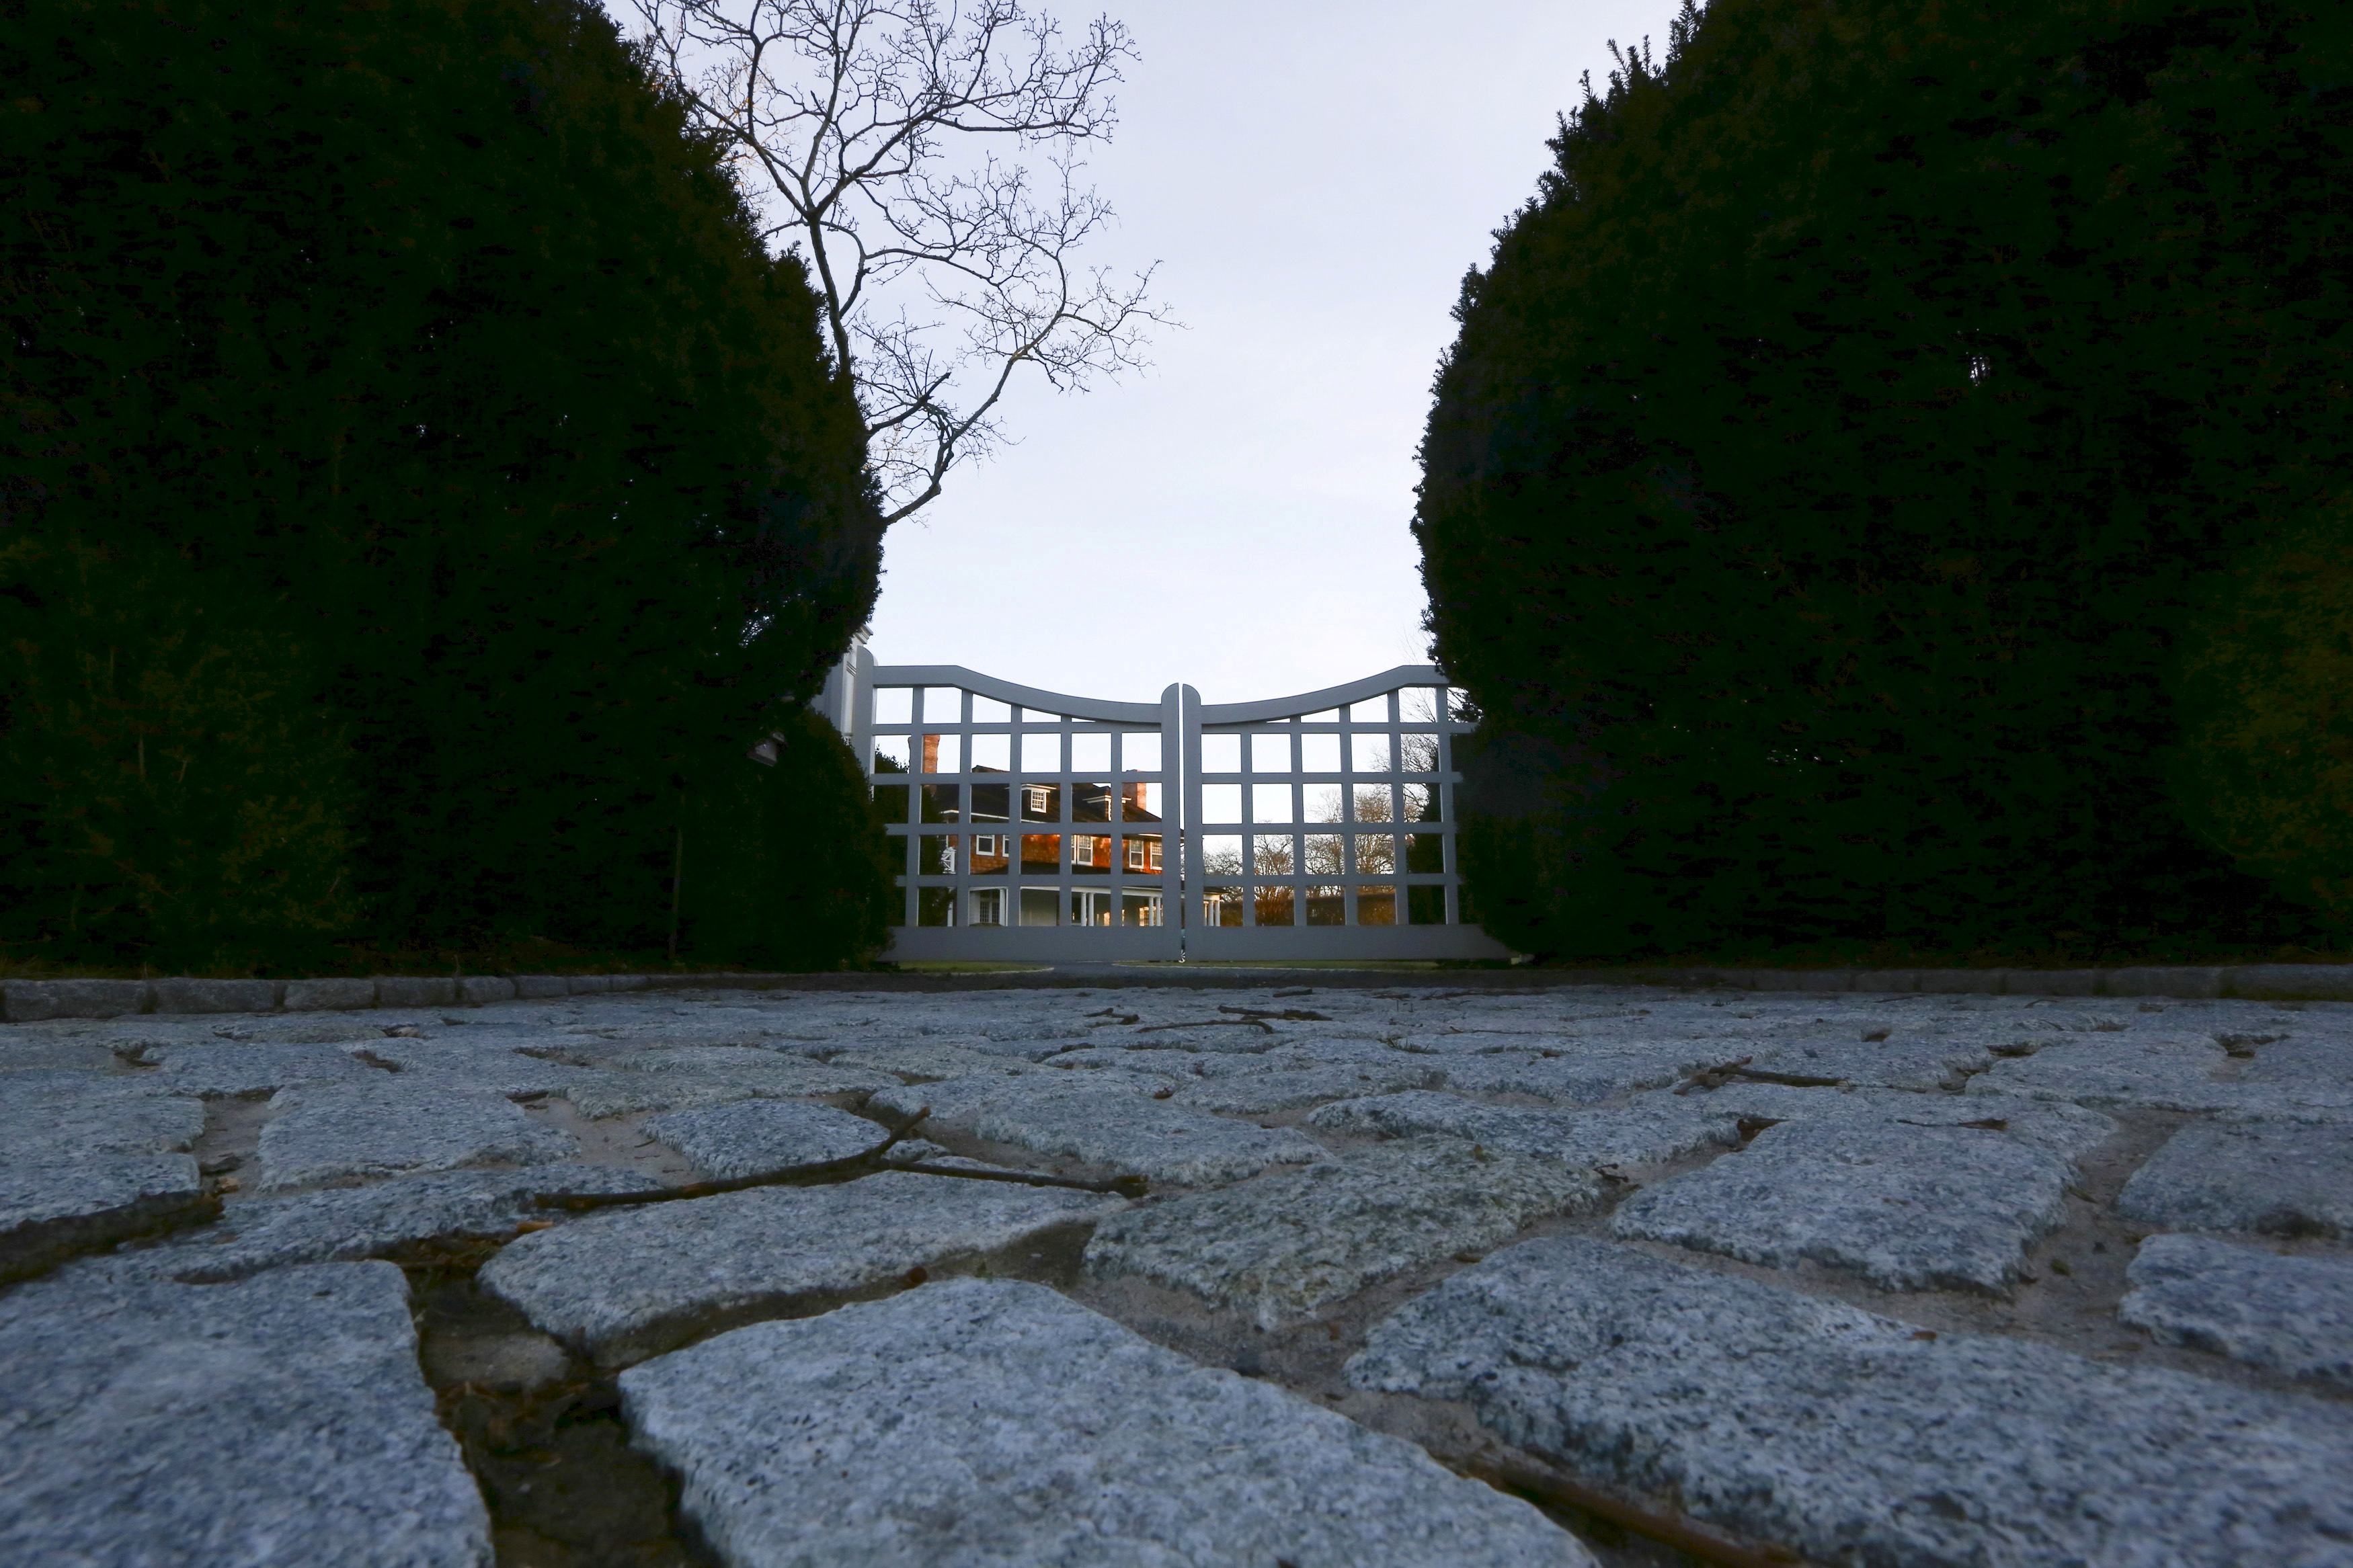 A house is seen past the gate on a private property in East Hampton, New York, March 16, 2016. The market for luxury homes in the Hamptons, the summer playground for Wall Street's wealthiest, is losing some of its luster as financial markets limp along for a second year.  REUTERS/Jeffrey Basinger/File Photo